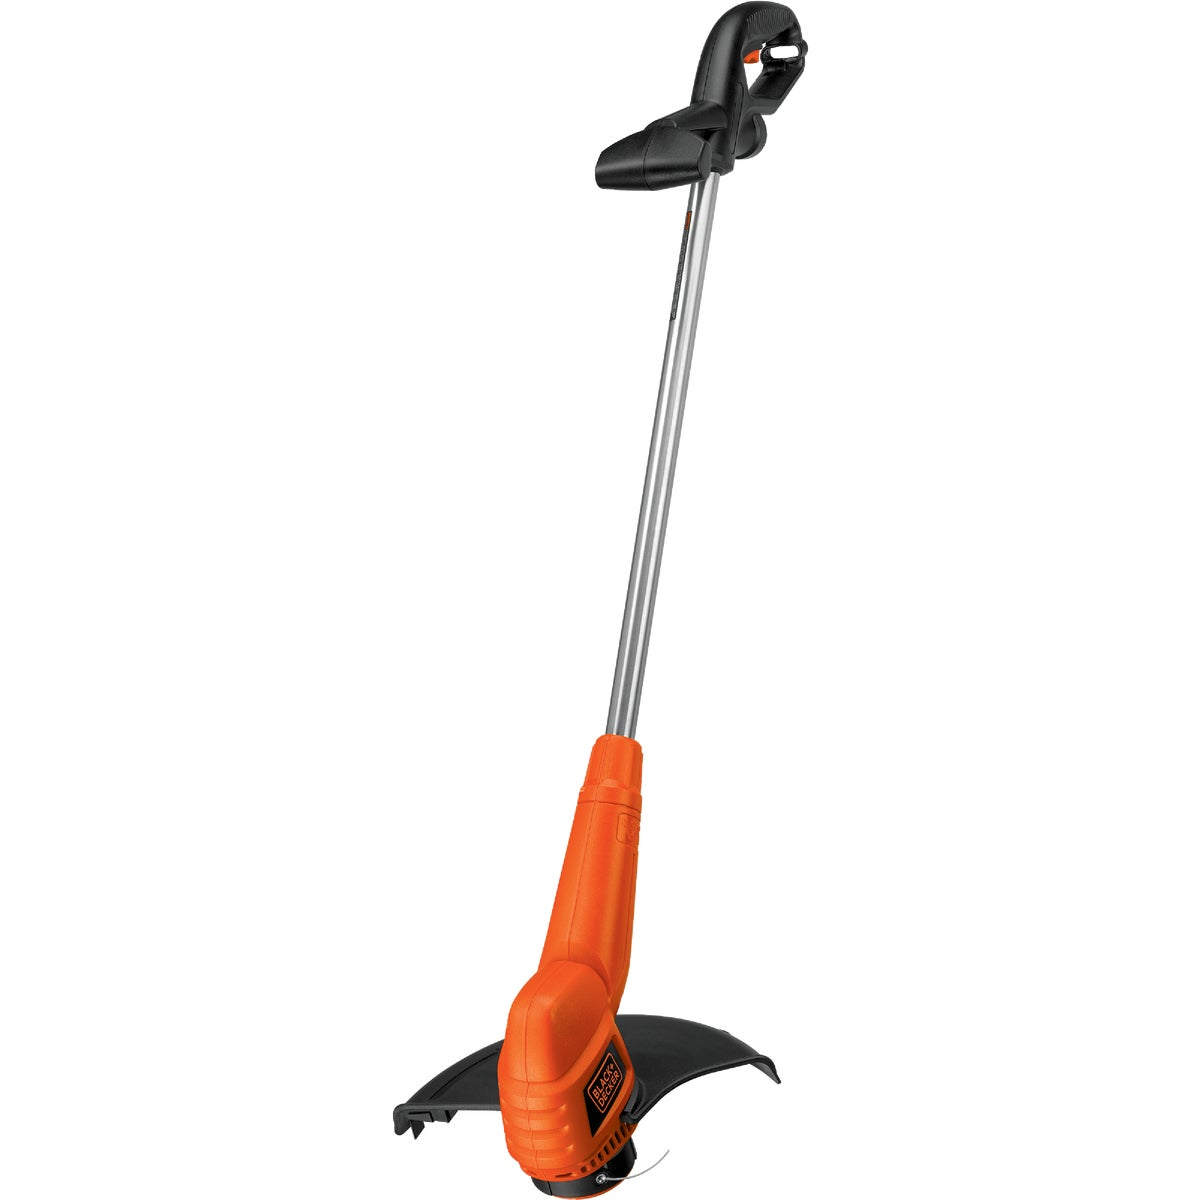 Black & Decker 13 In. Corded Electric String Trimmer, ST7700